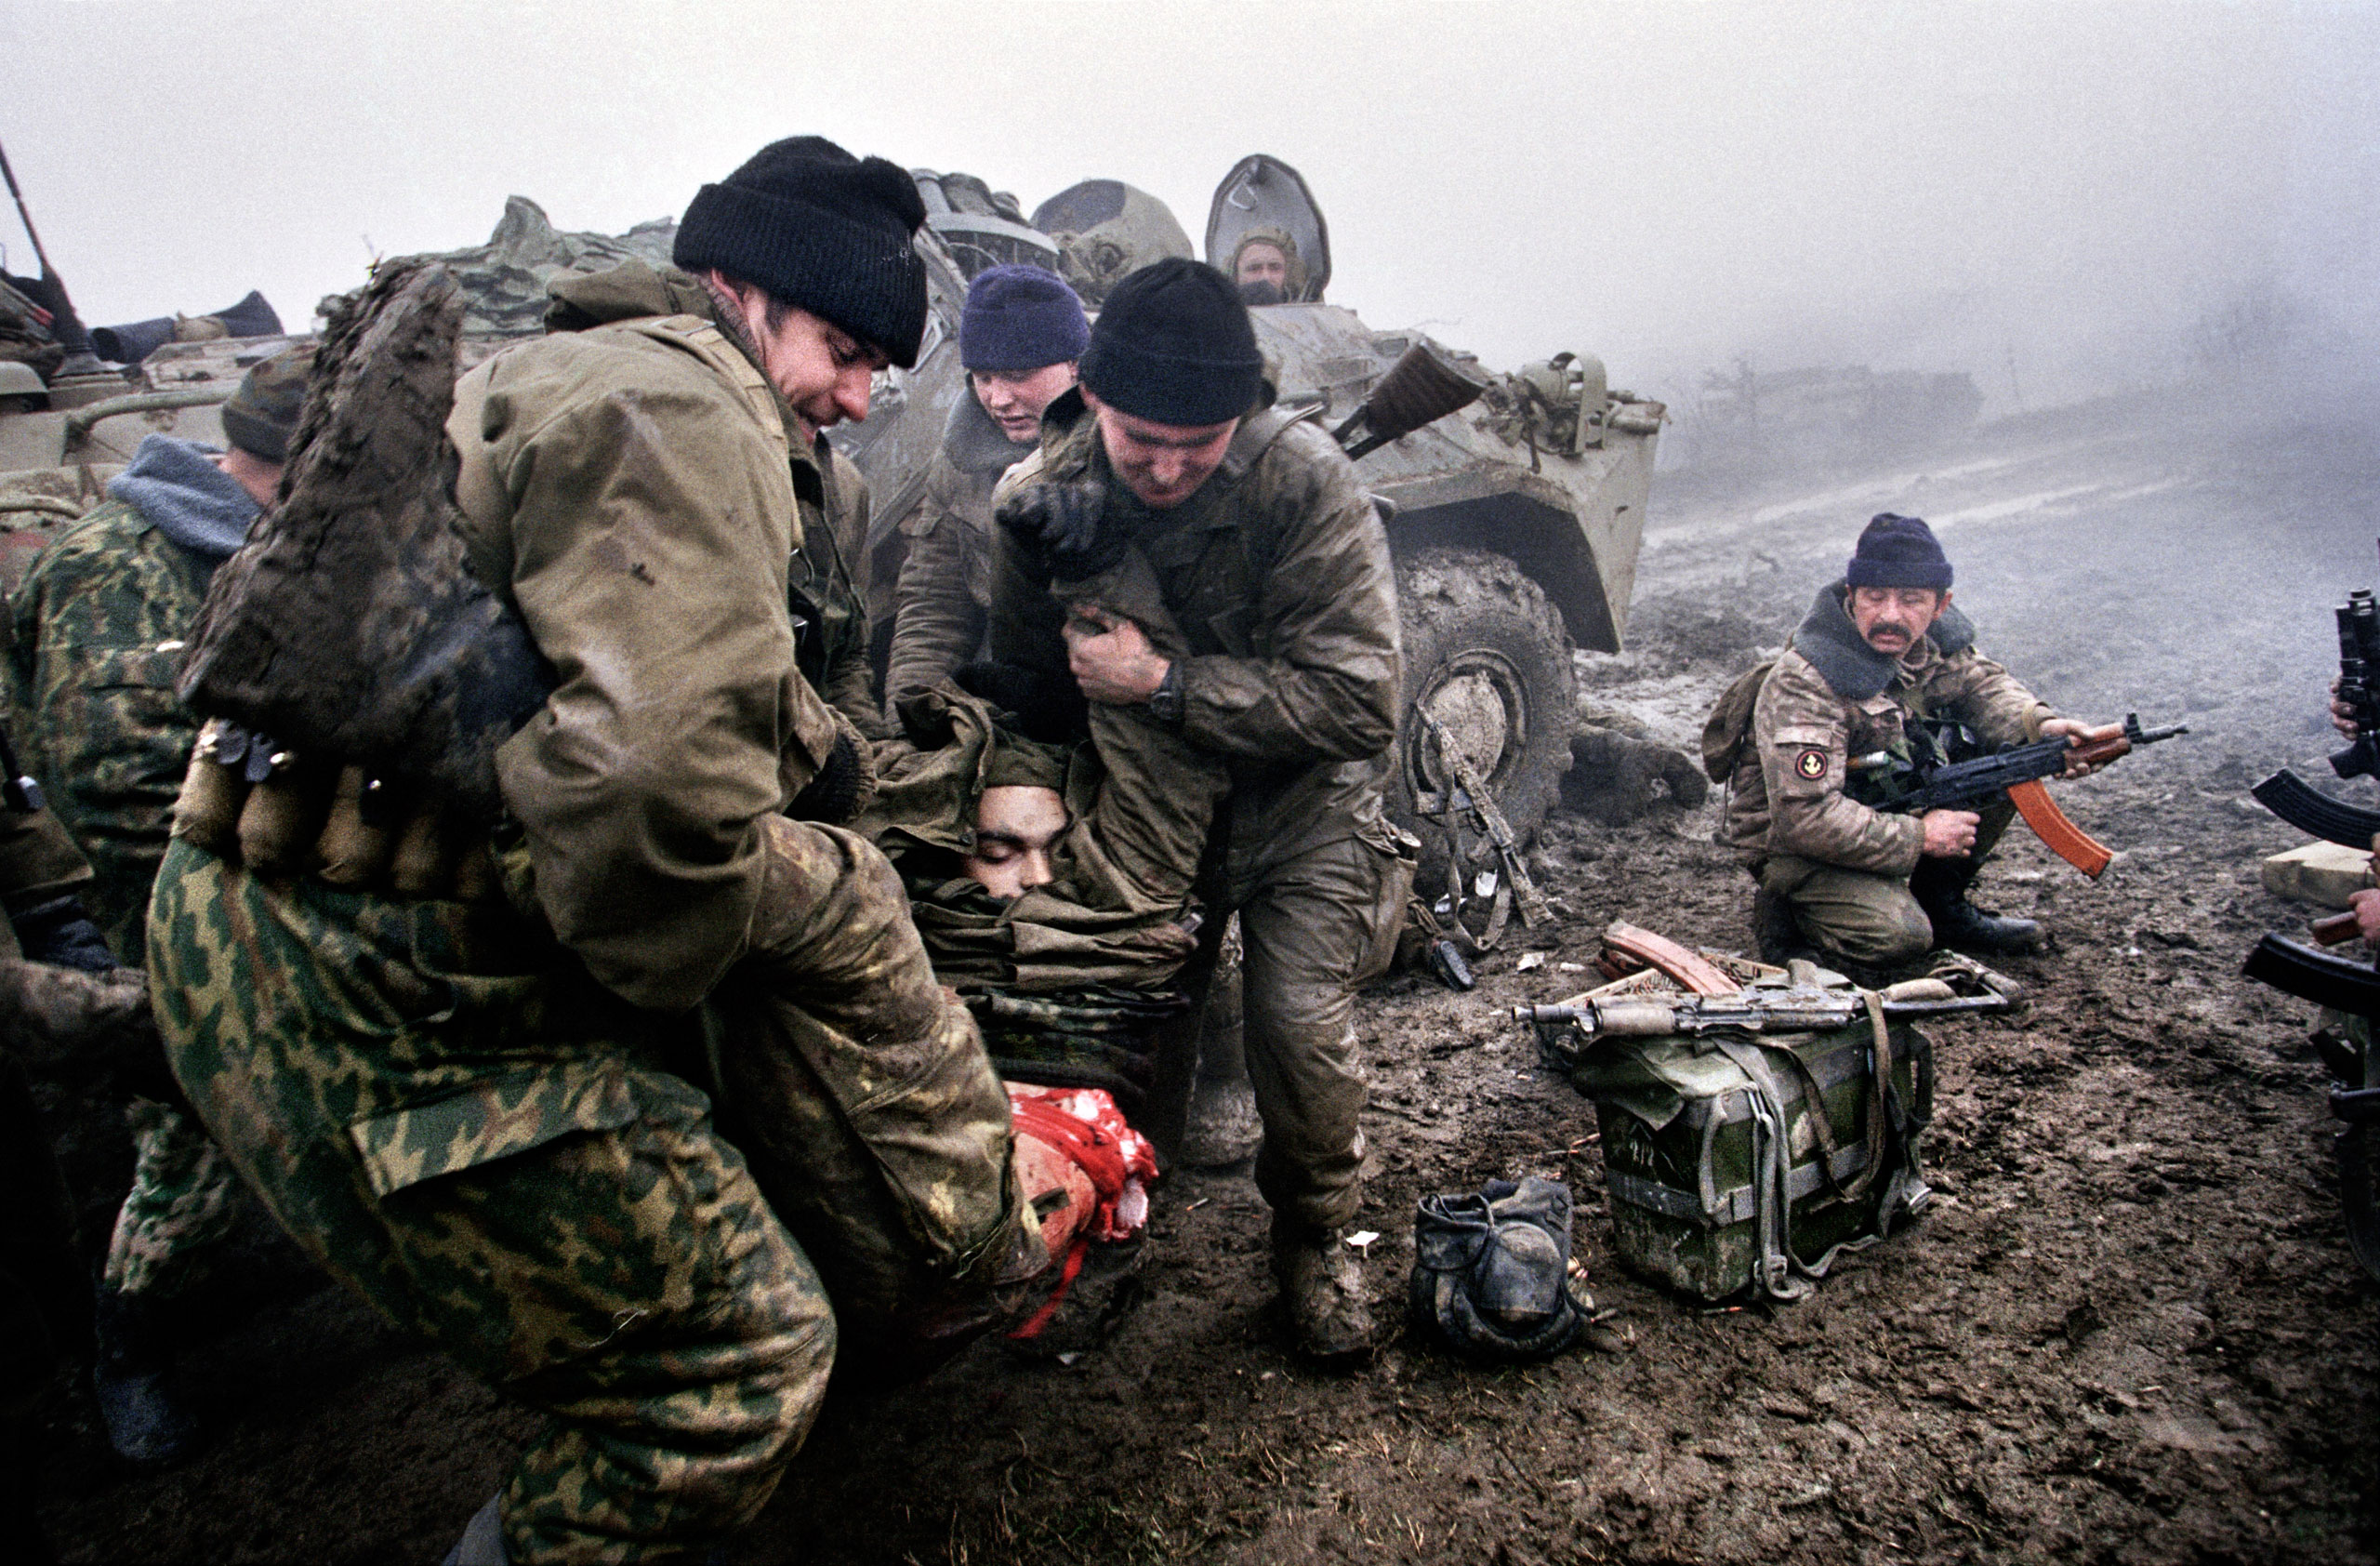 Marines carry a dead comrade during fighting in Tsentaroy, Chechnya, December 1999. In September of that year, Russian forces began military action against Chechen rebels.